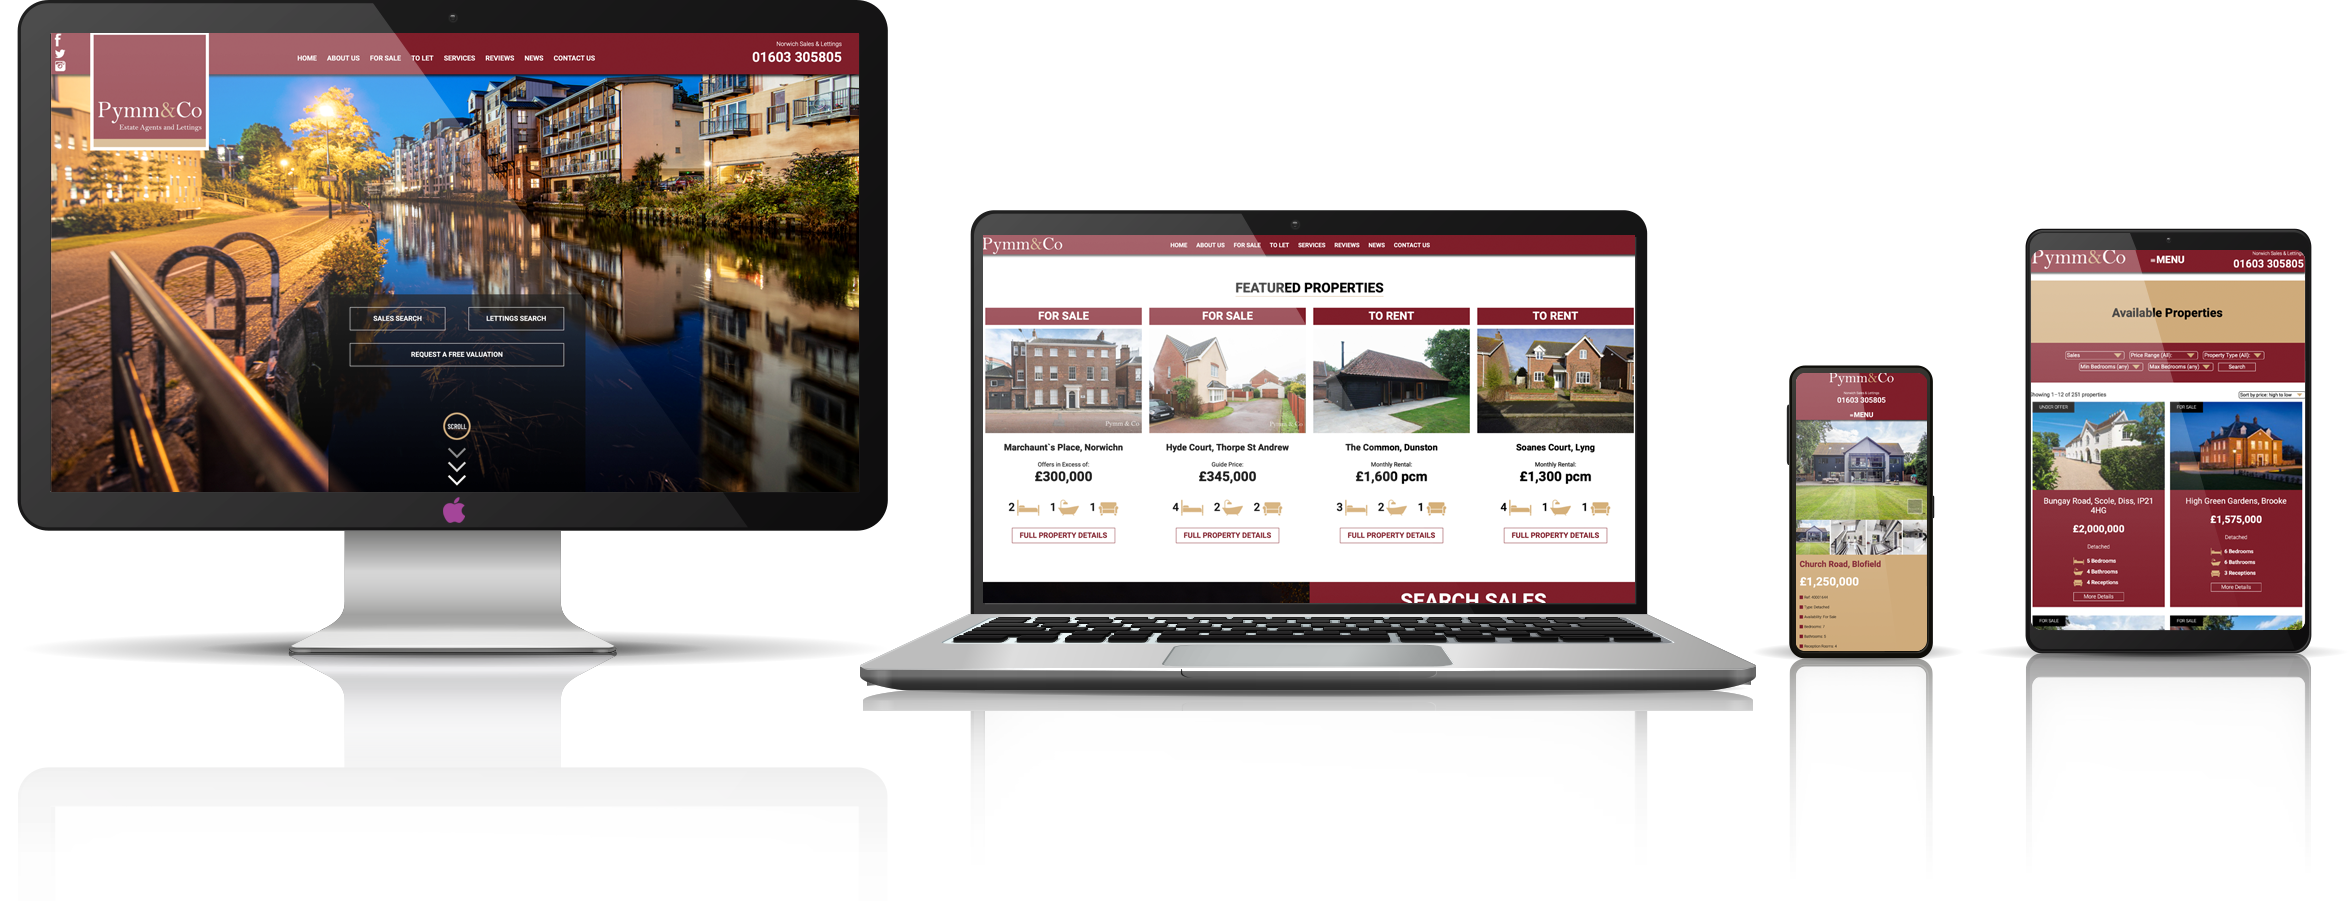 Responsive mock up view of the new Pymm & Co Estate Agents and Lettings website